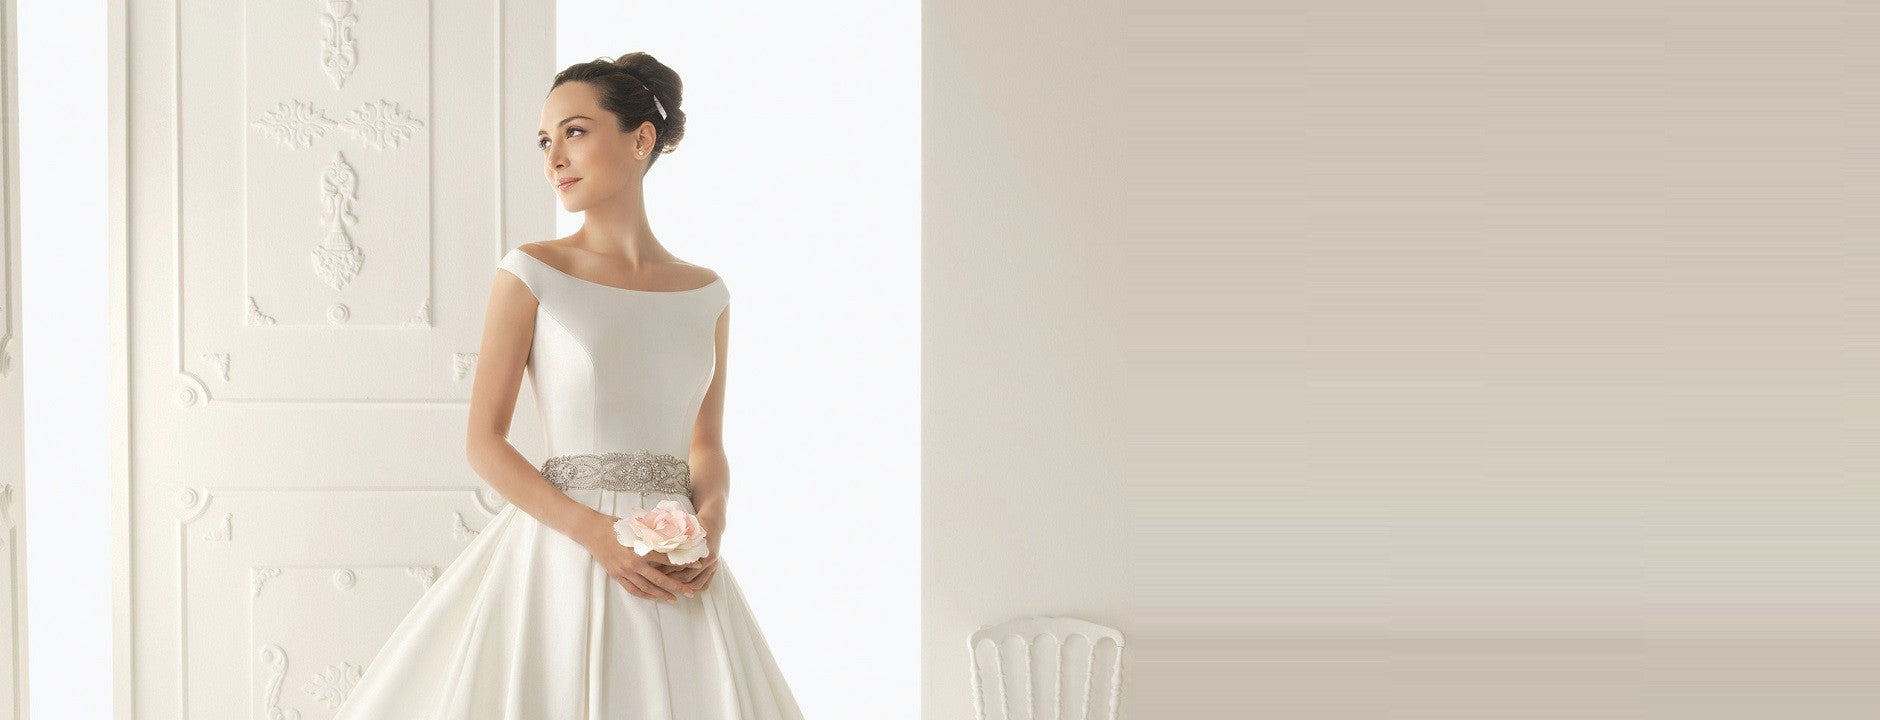 Bridal Gowns & Ball Dresses